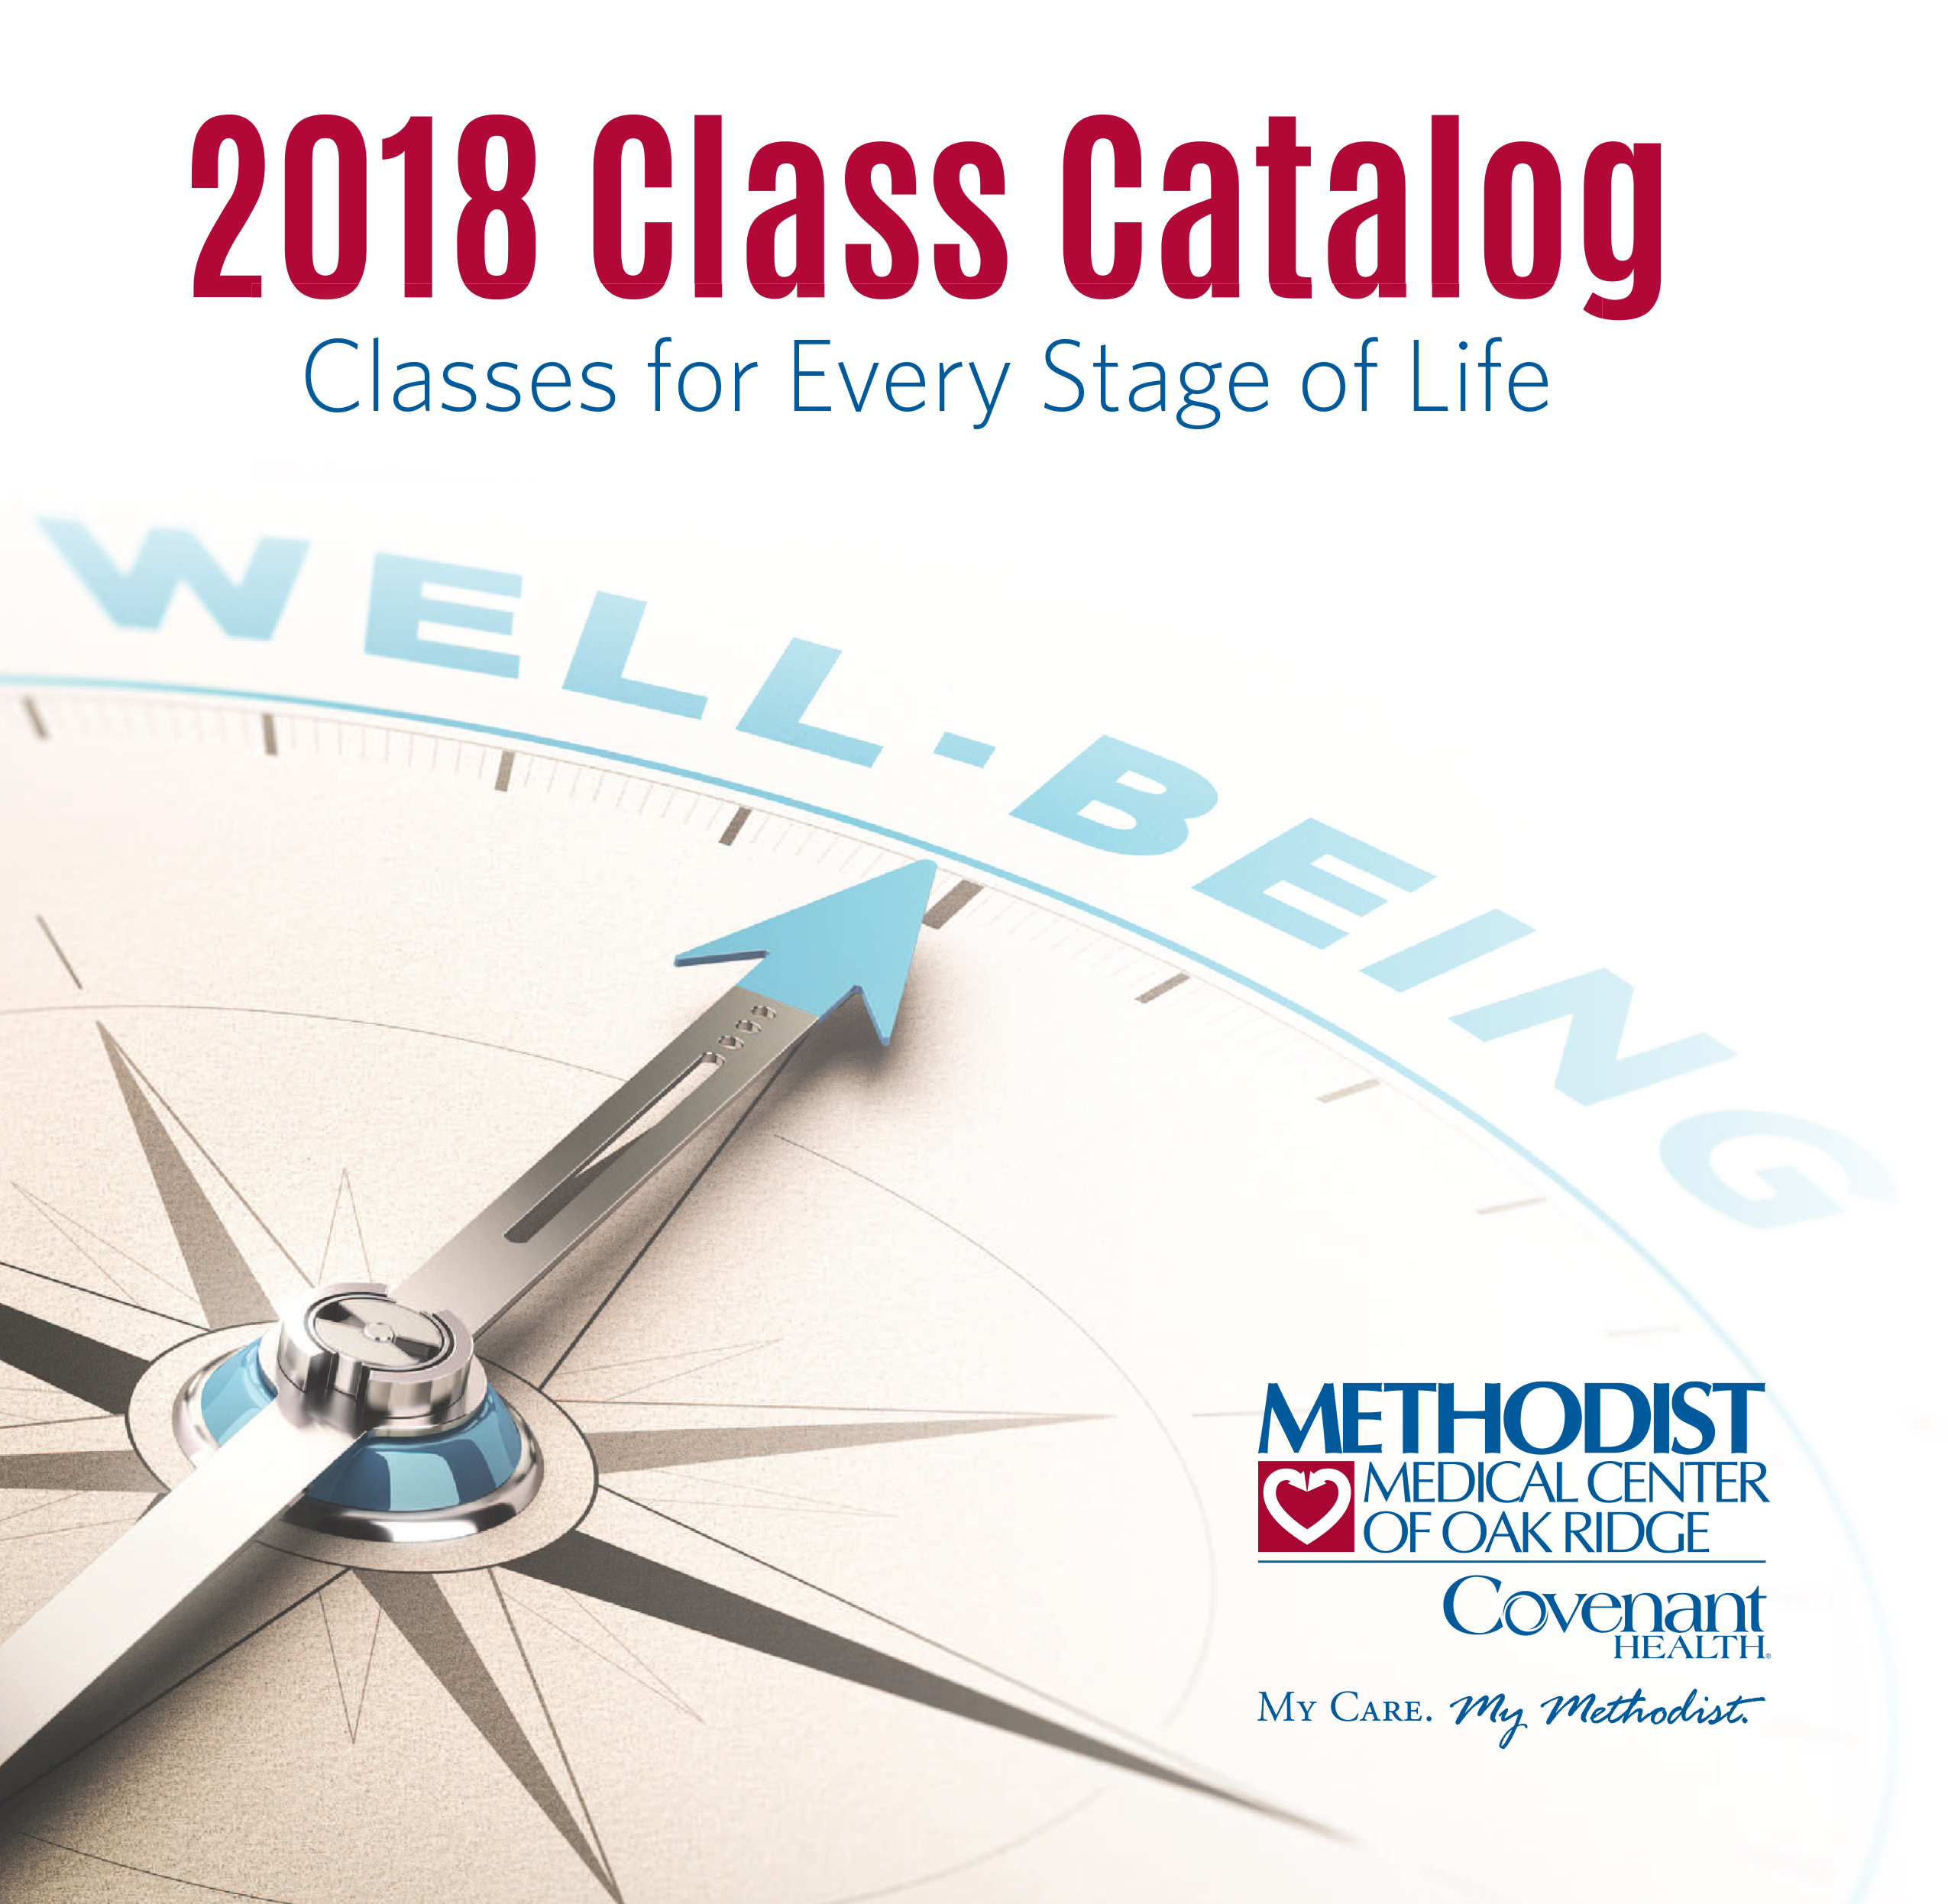 Health and wellness class offerings for every stage of life.